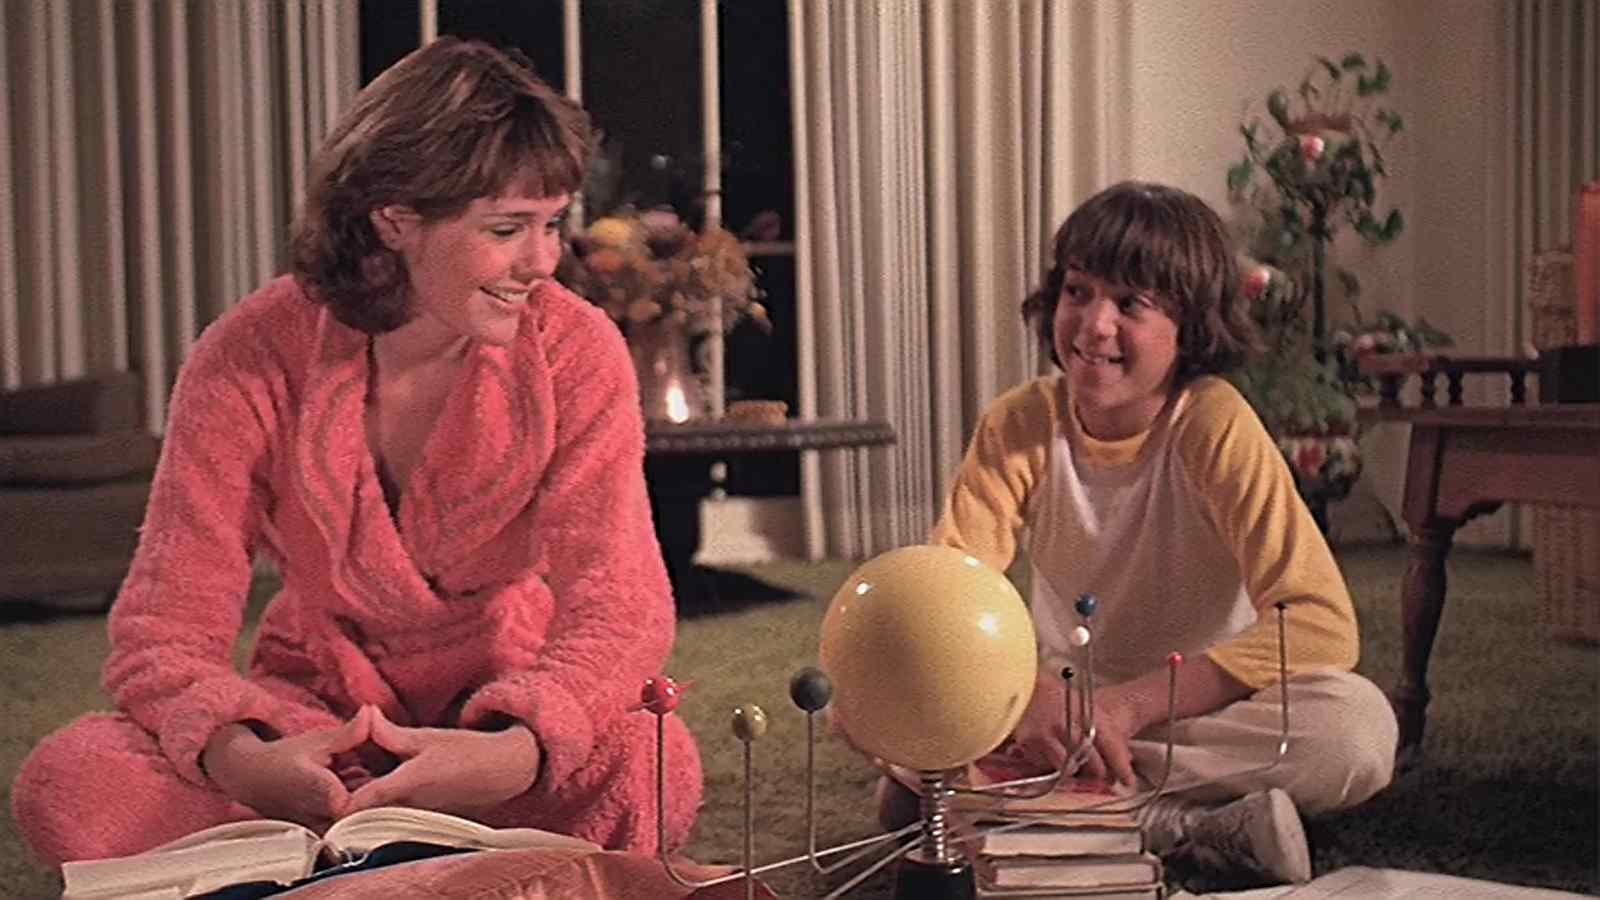 Joyce (Lori Lethin) and her brother Timmy (K.C. Martel) doing some research on astrology in Ed Hunt's Bloody Birthday.